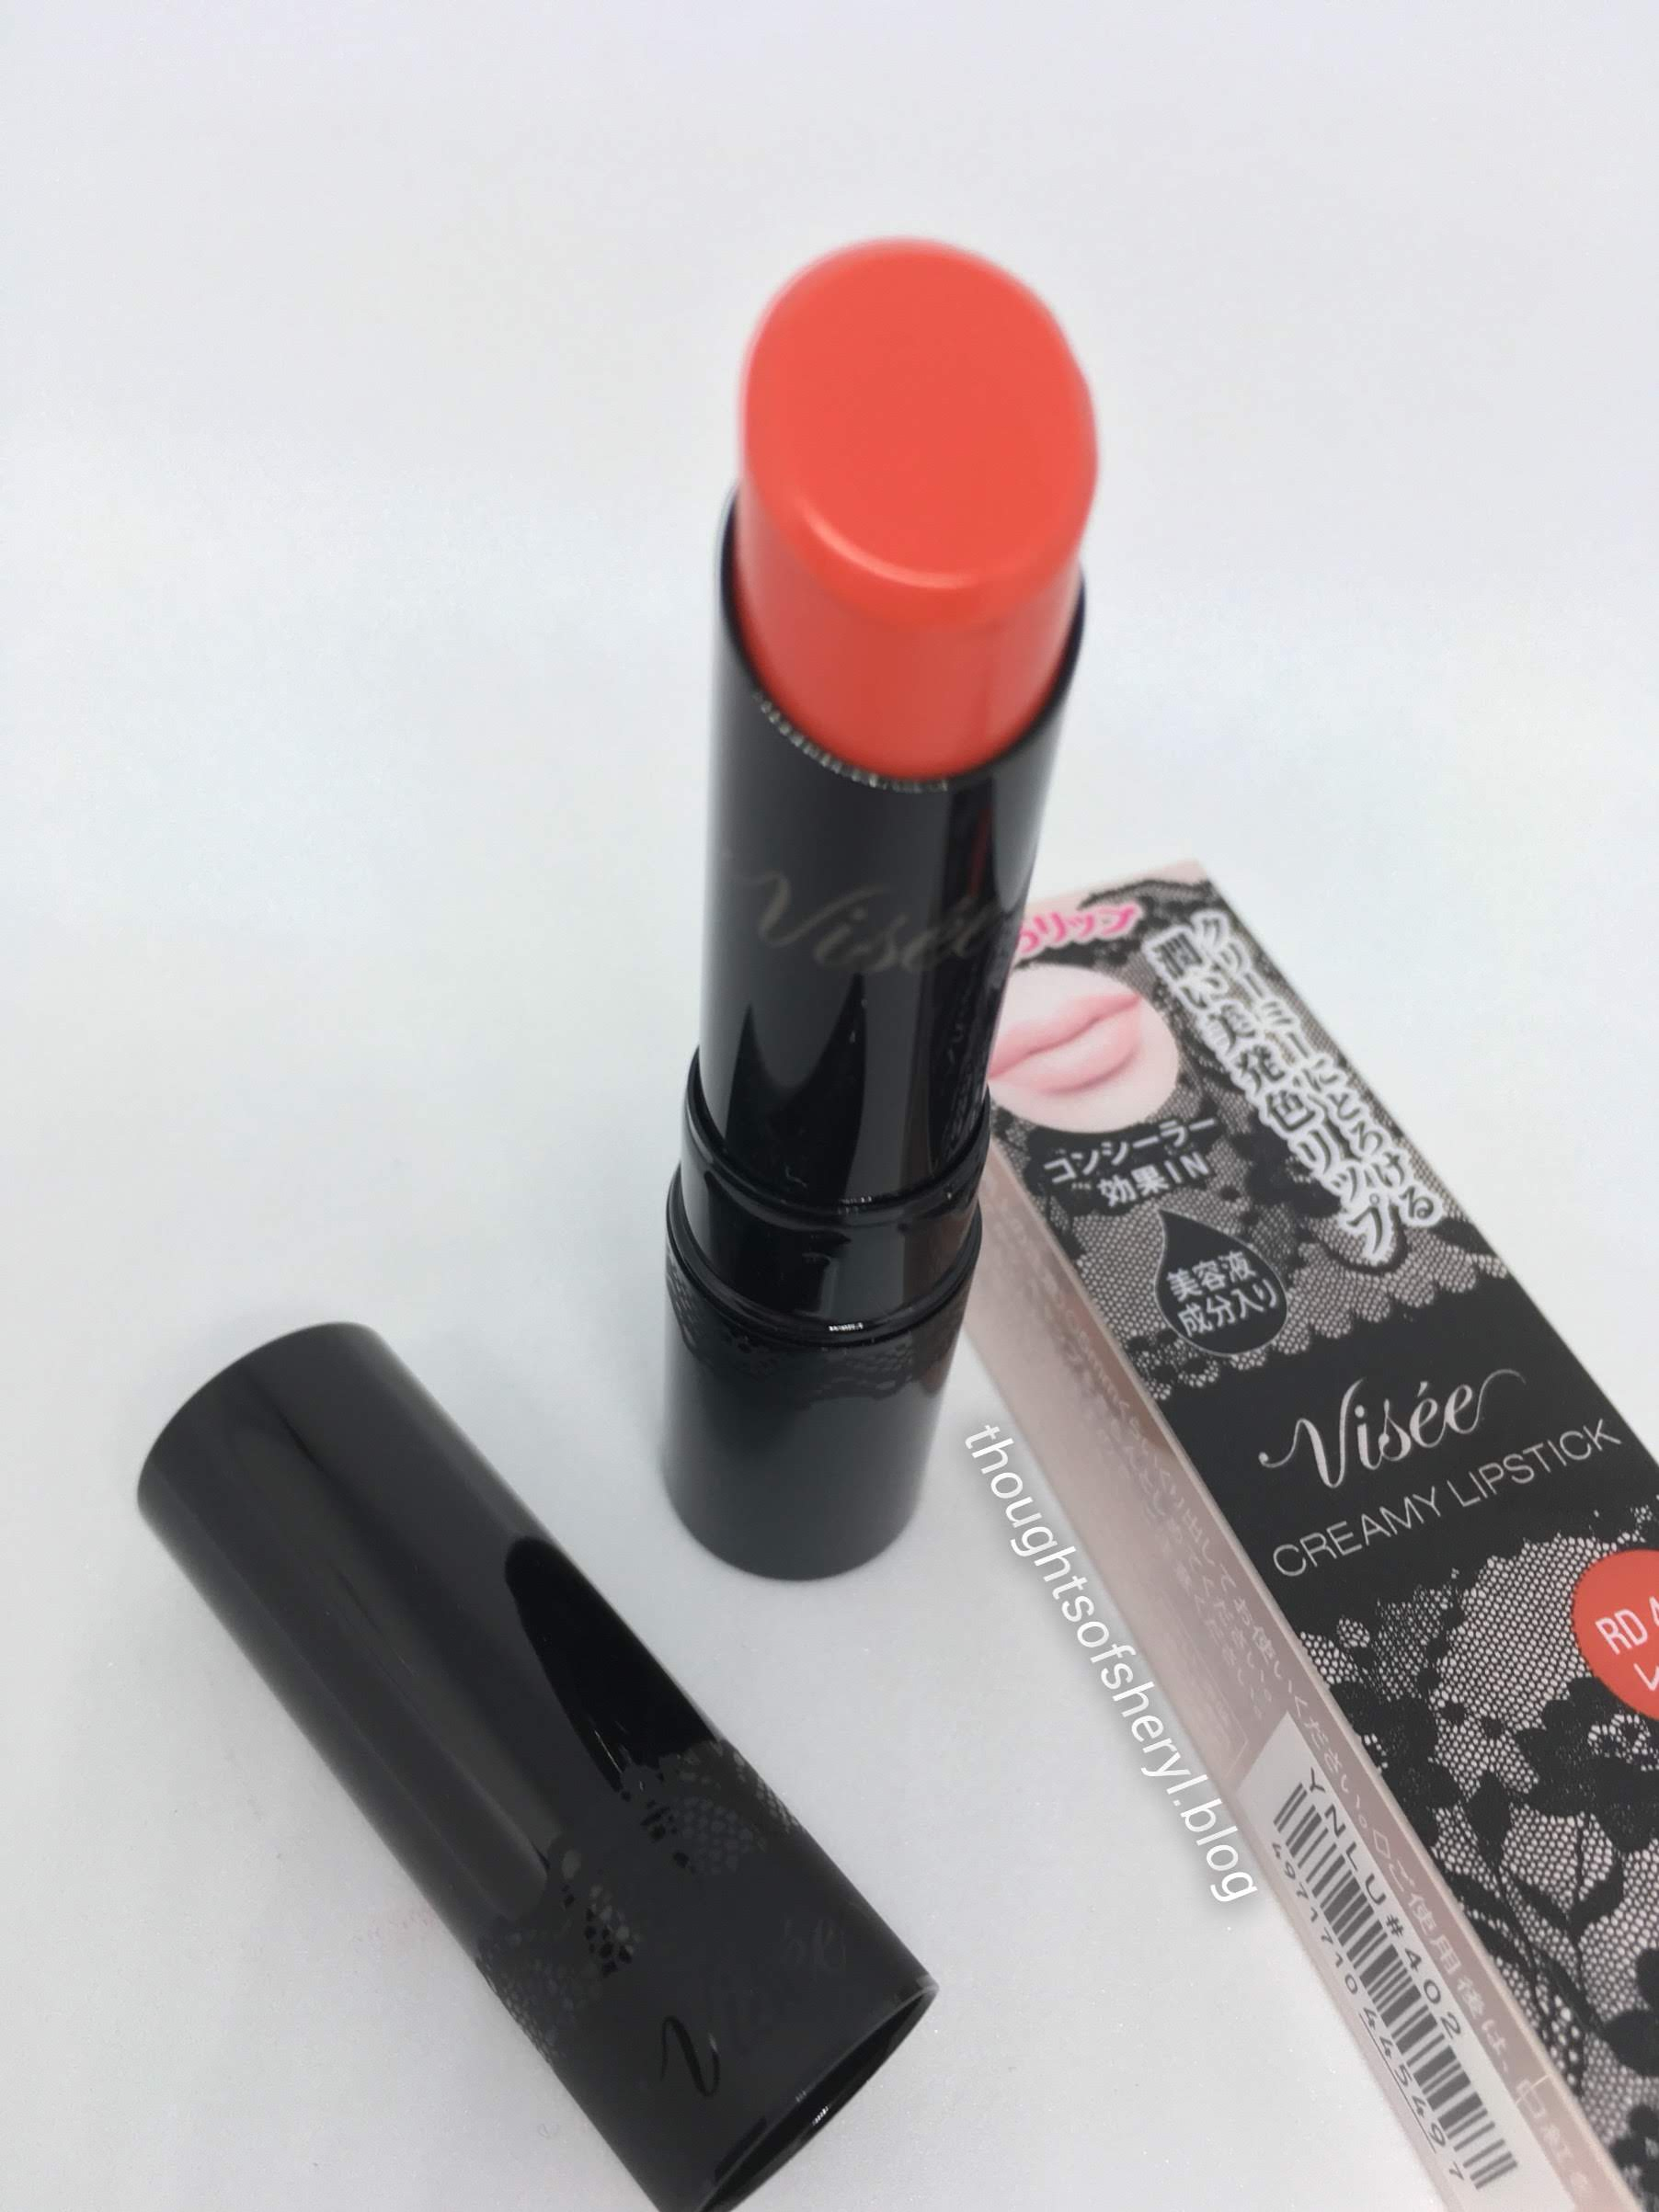 visee creamy lipstick rd 402 review